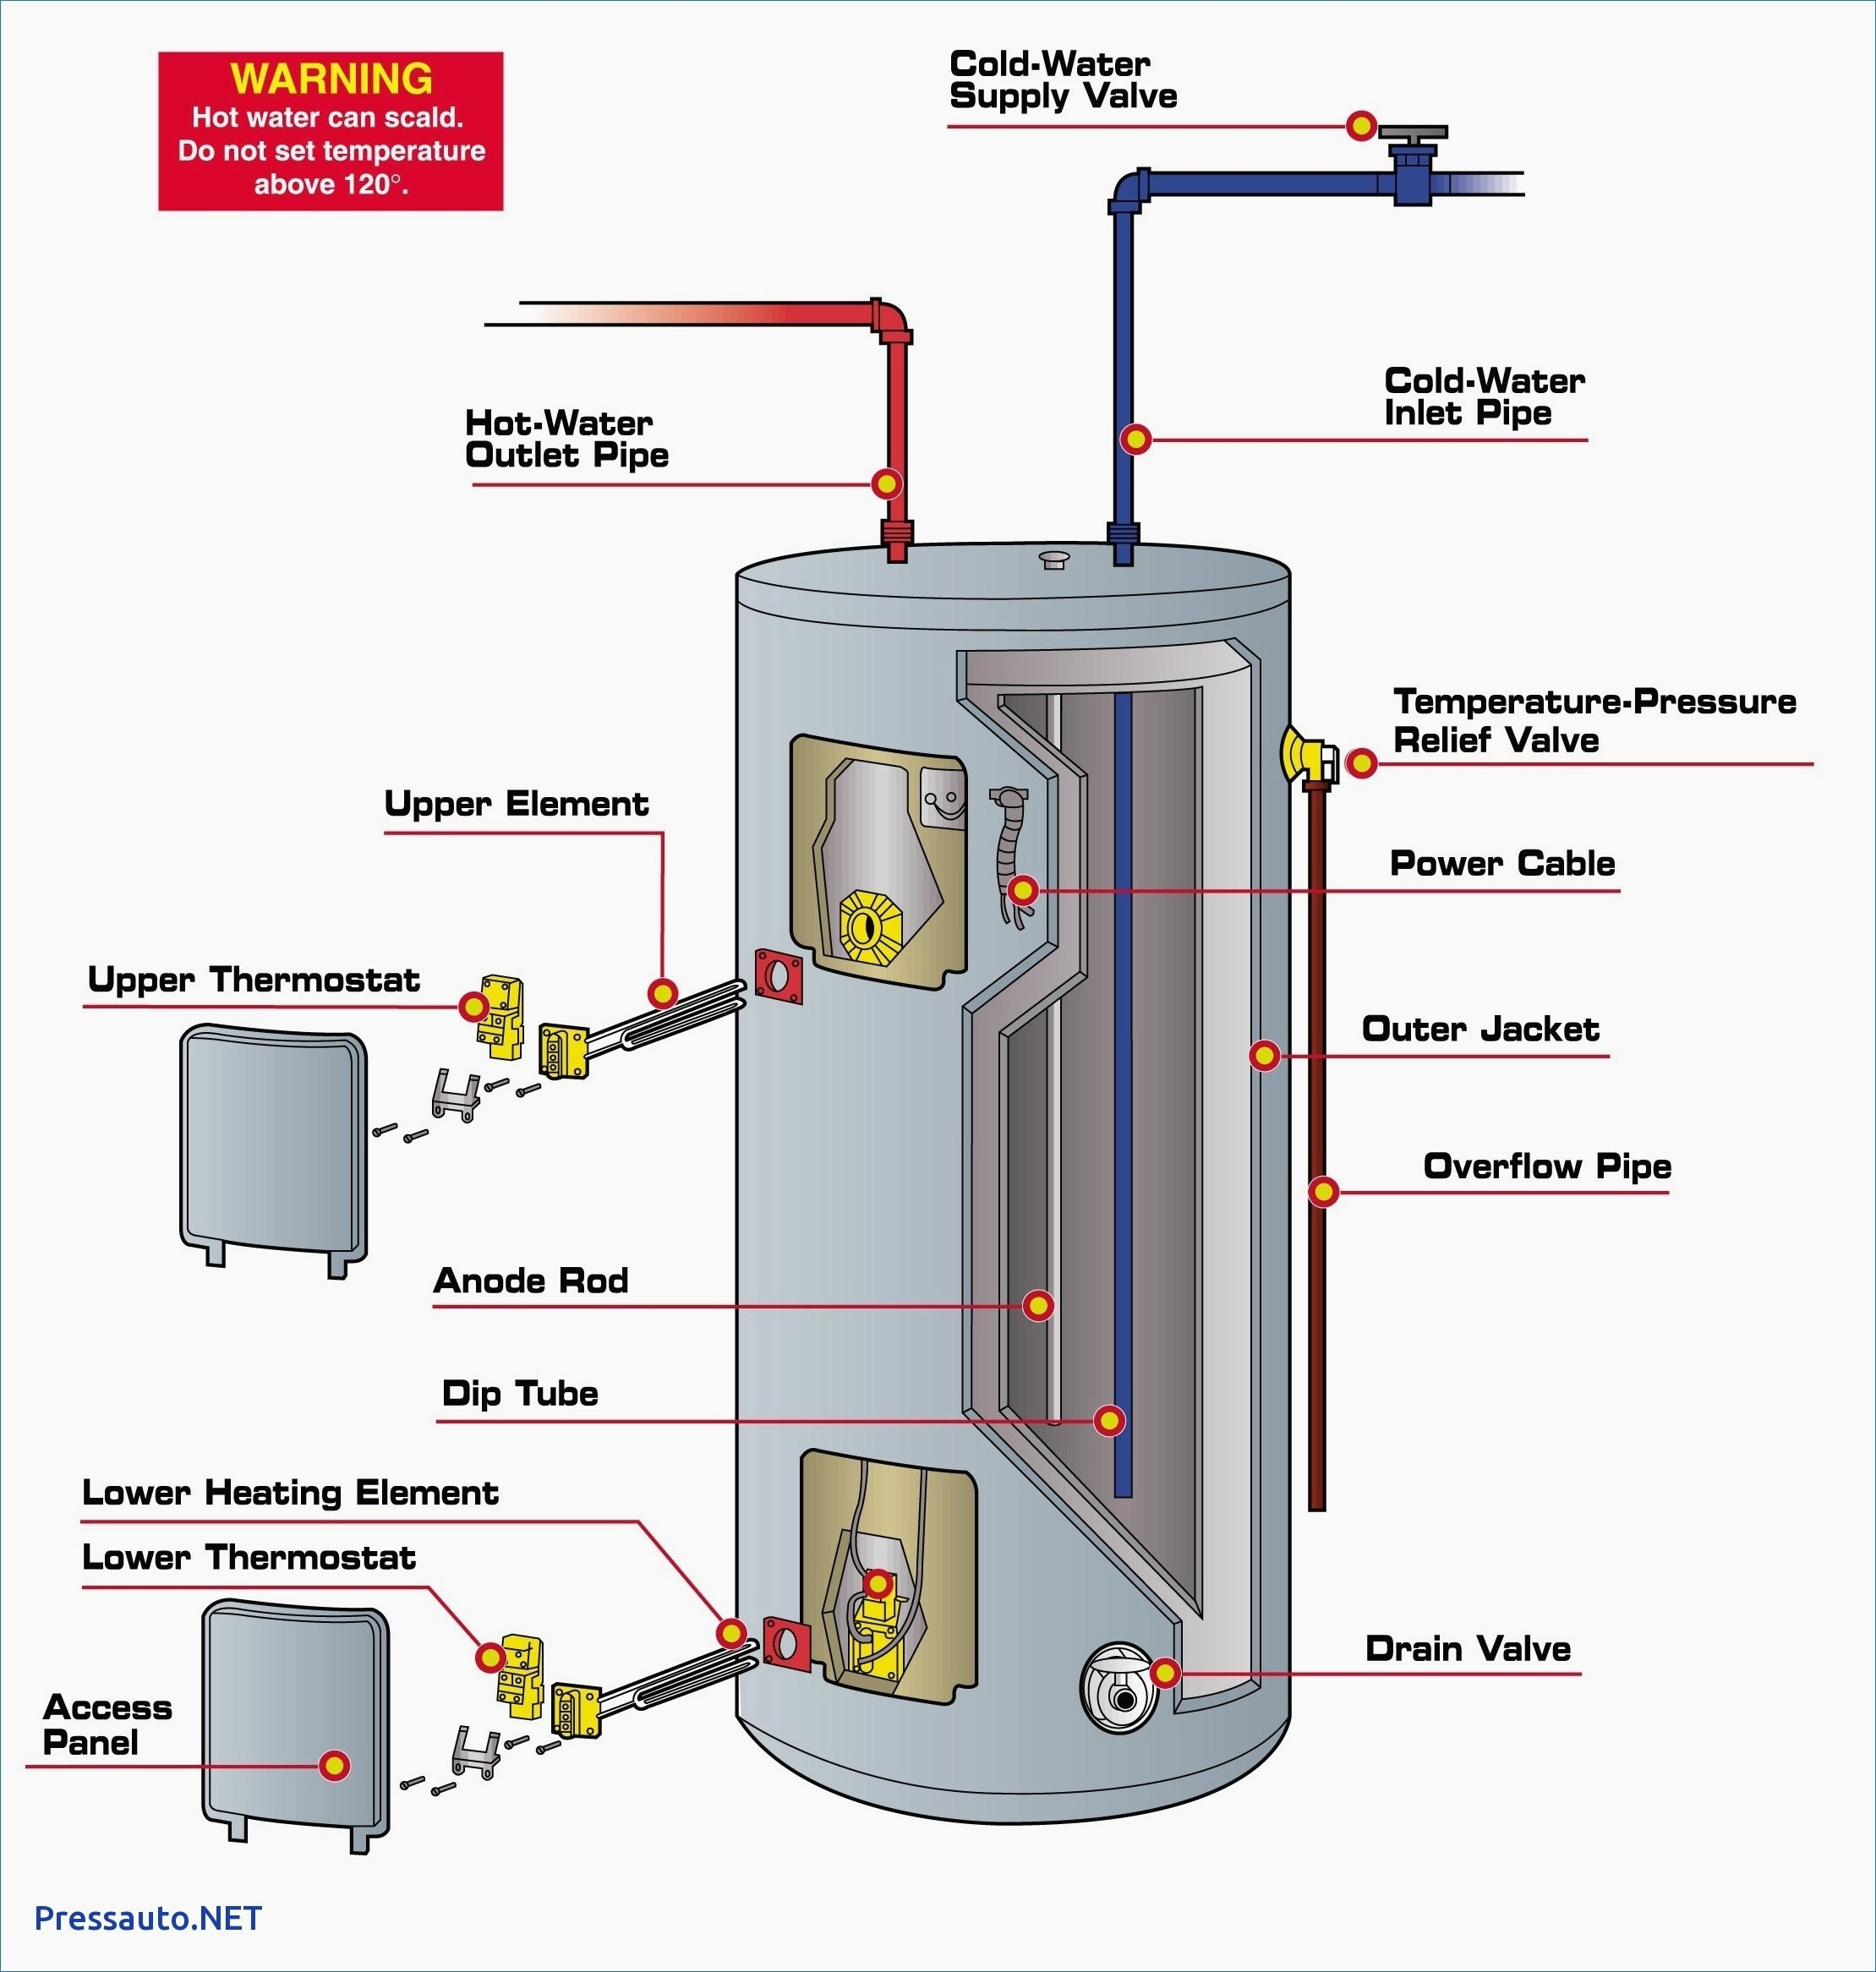 220v hot water heater wiring diagram | free wiring diagram hot water heater wiring diagrams